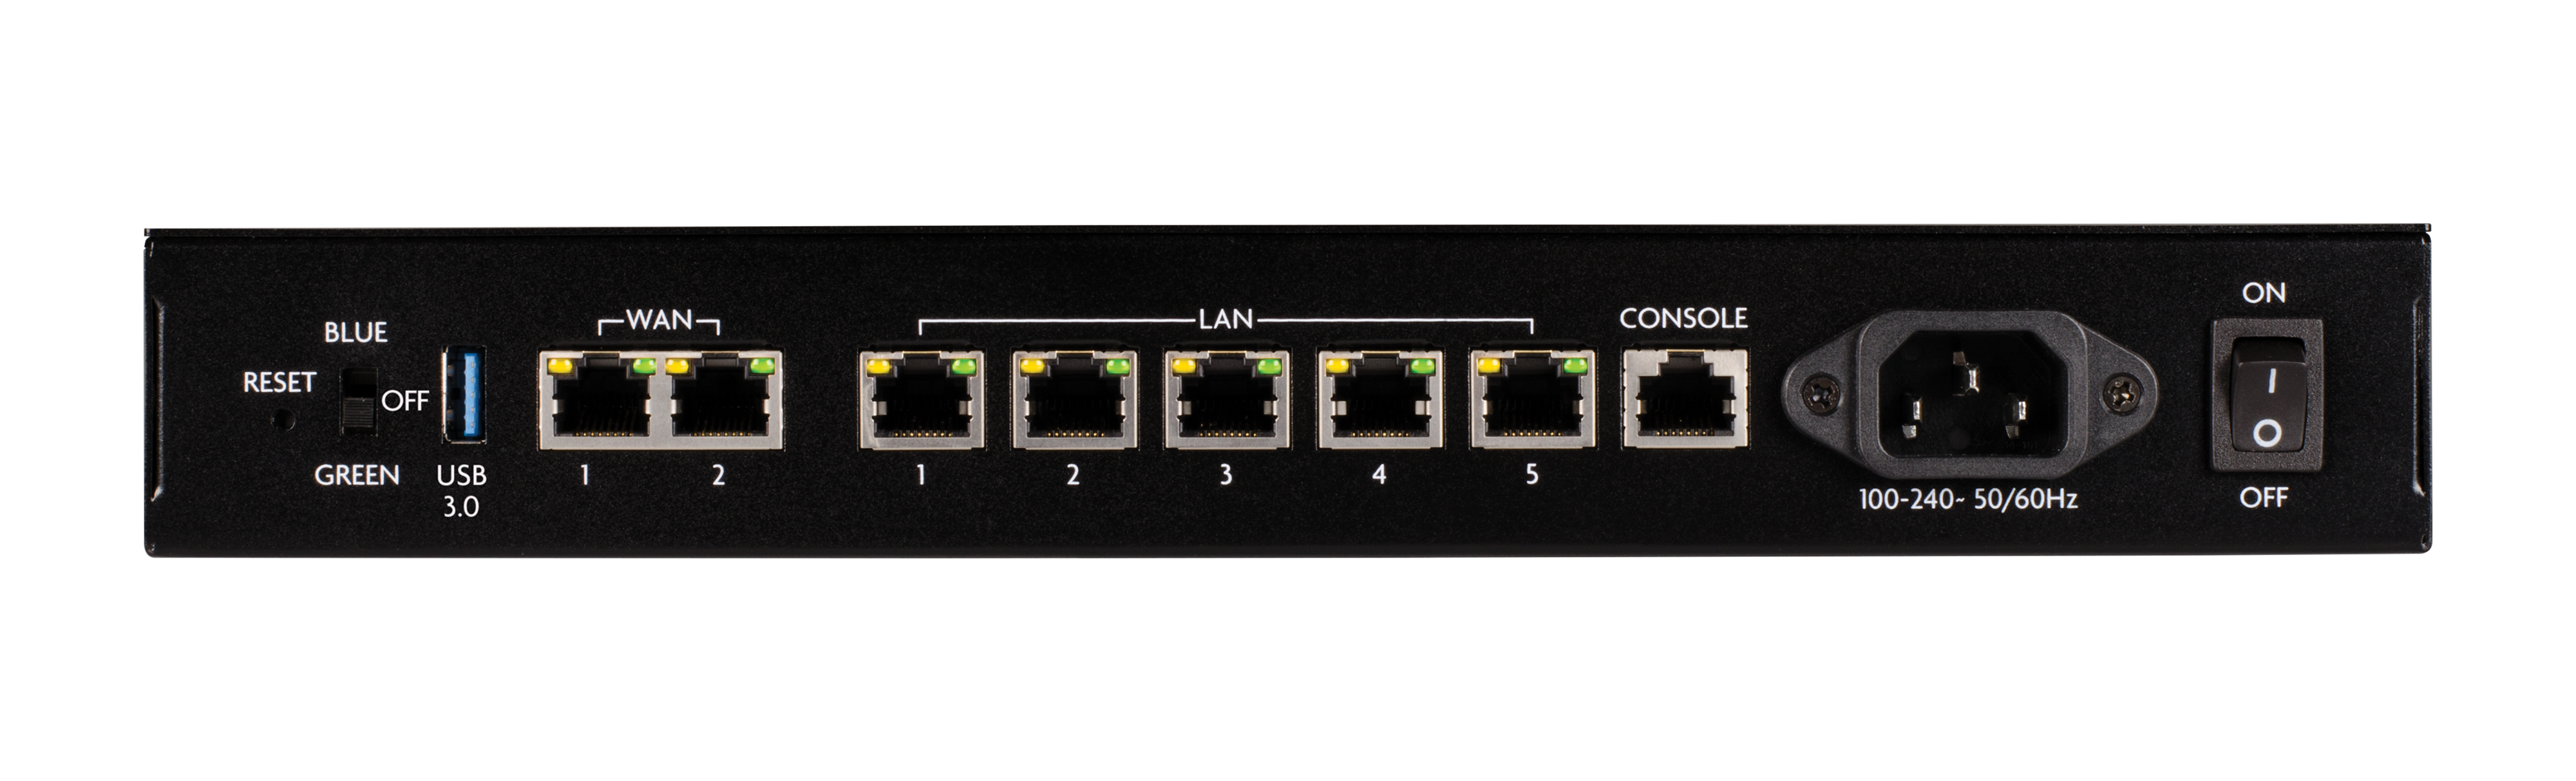 Luxul Releases Dual-WAN Epic 5 Wired Gigabit Router With Integrated ...